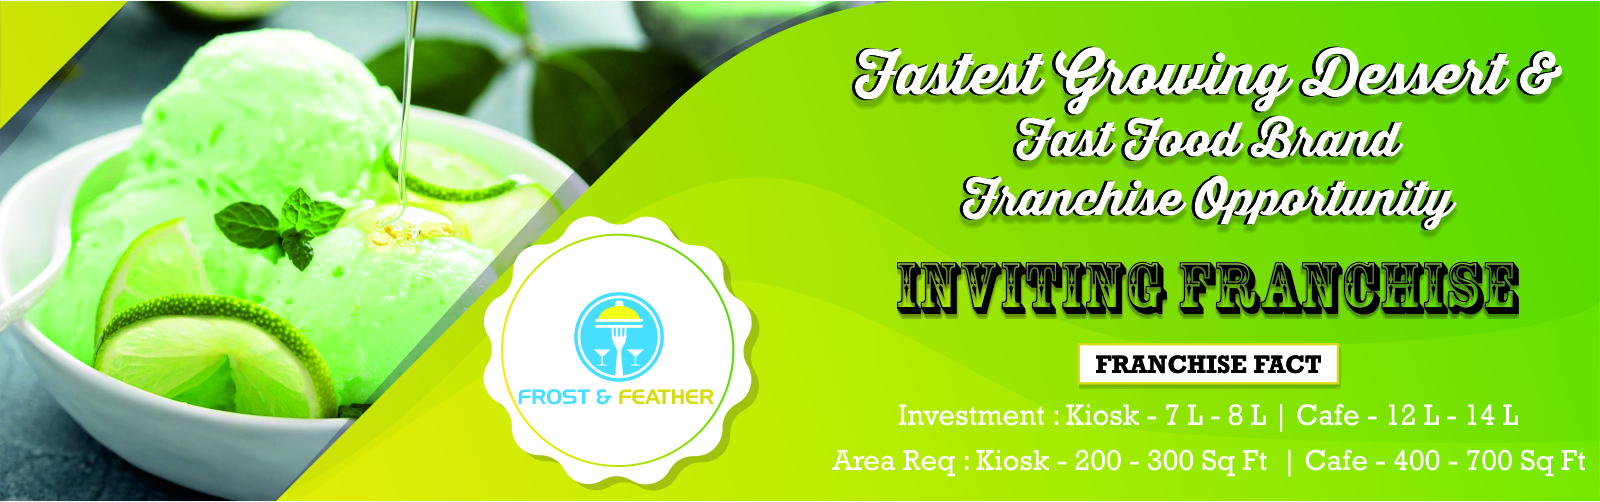 admin/photos/Frost And Feather ( Leading Dessert & Fast Food Brand )